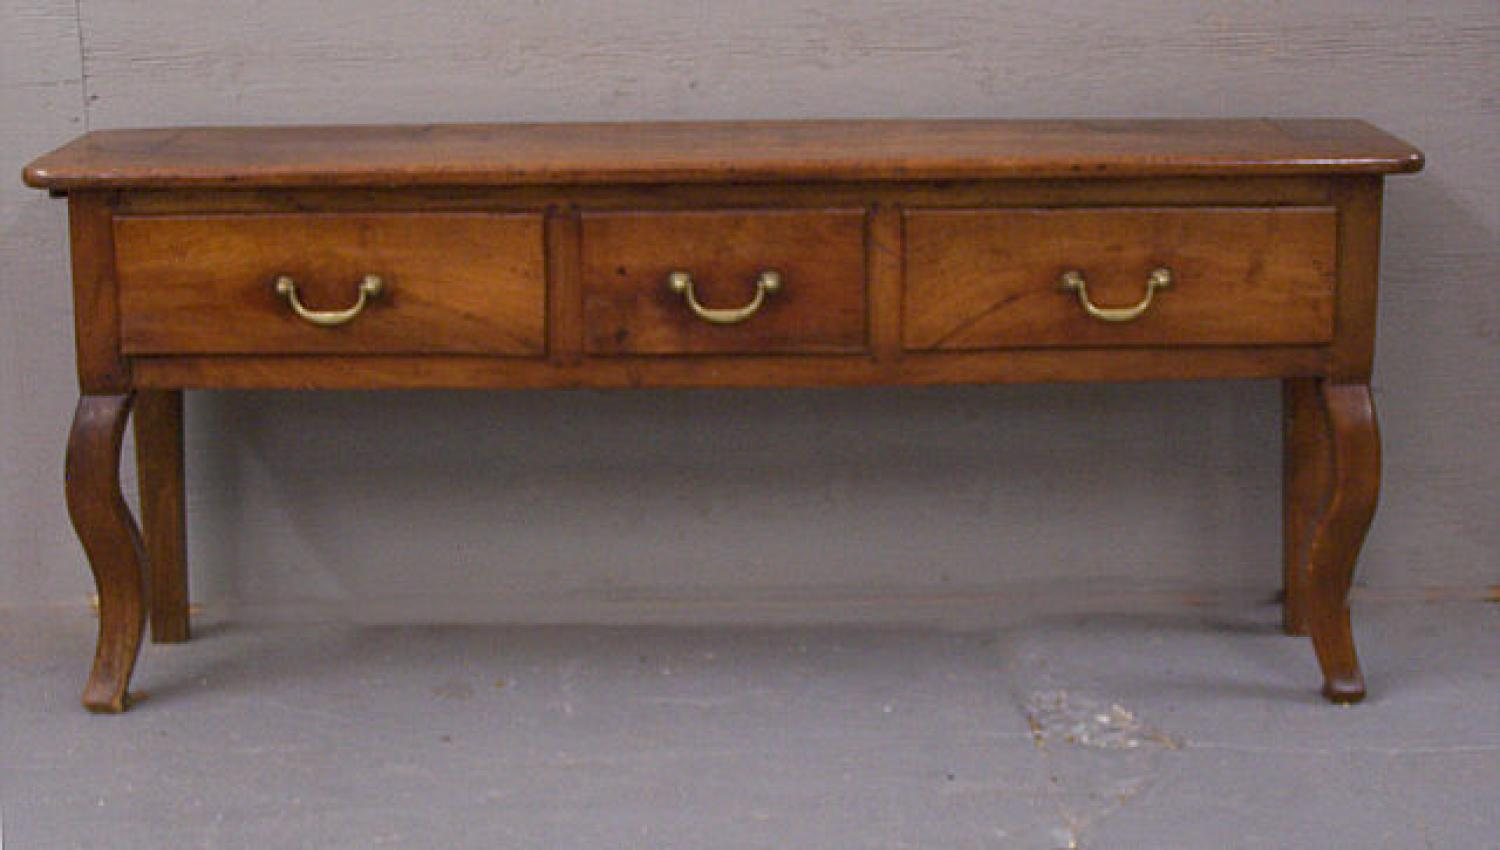 French country three drawer fruitwood sideboard c1780